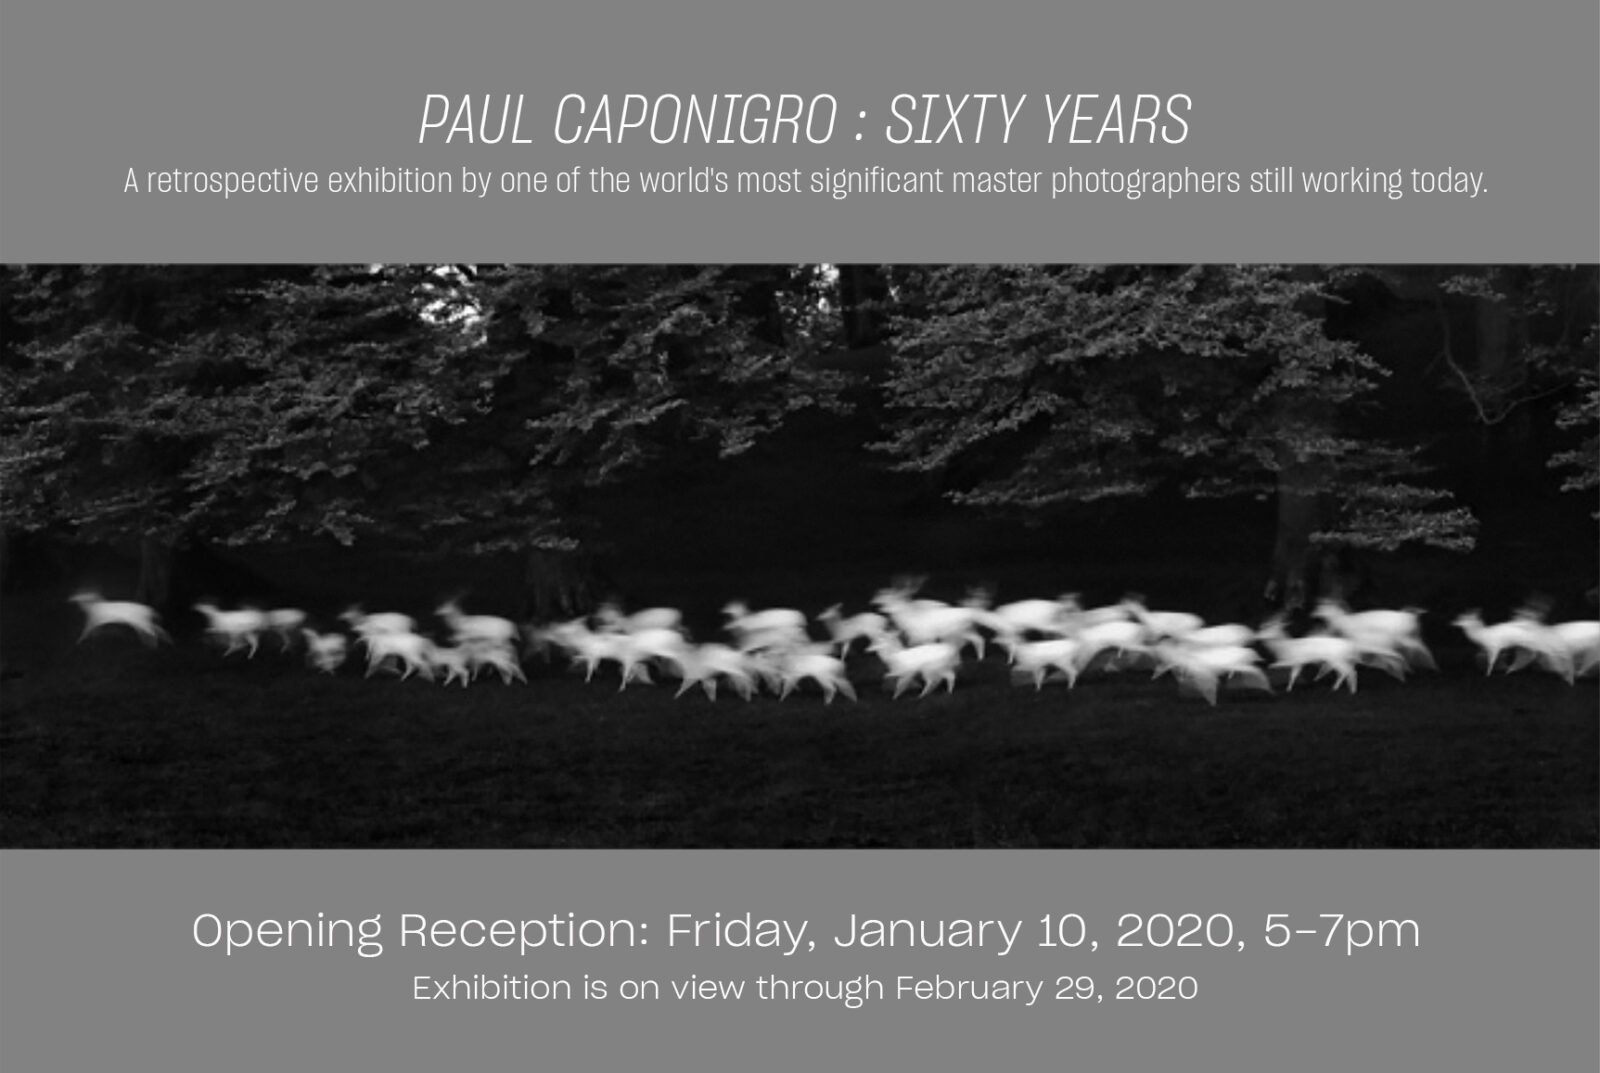 exhibition postcard with paul caponigro image of running deer and dates for exhibition, Opening reception january 10, 2020 5-7pm.